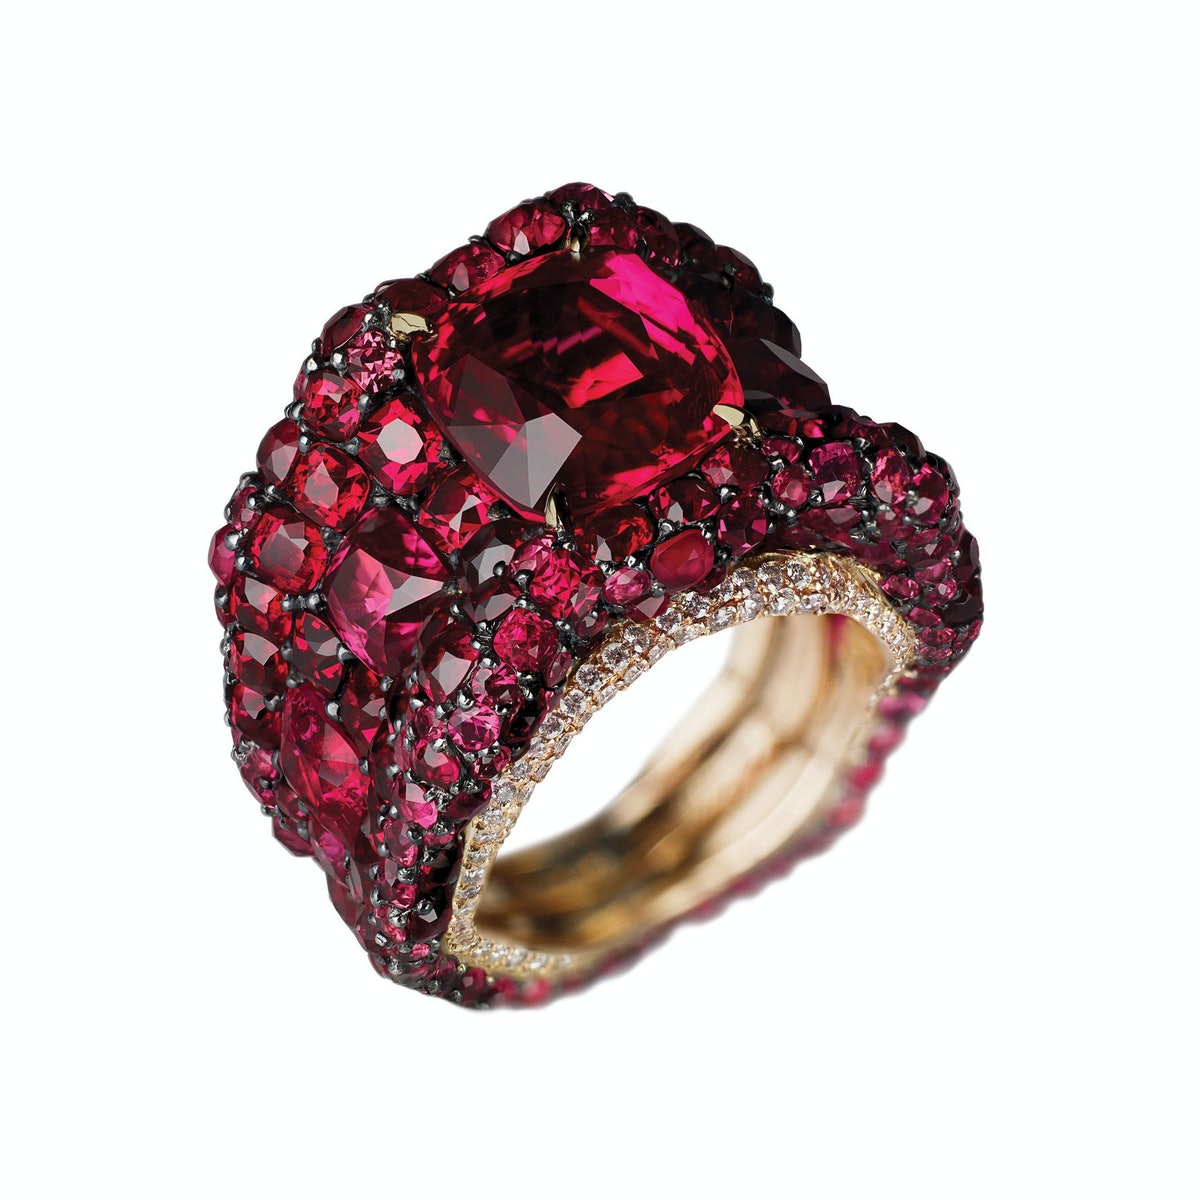 Fabergé gold, sterling silver, spinel, ruby, and diamond ring